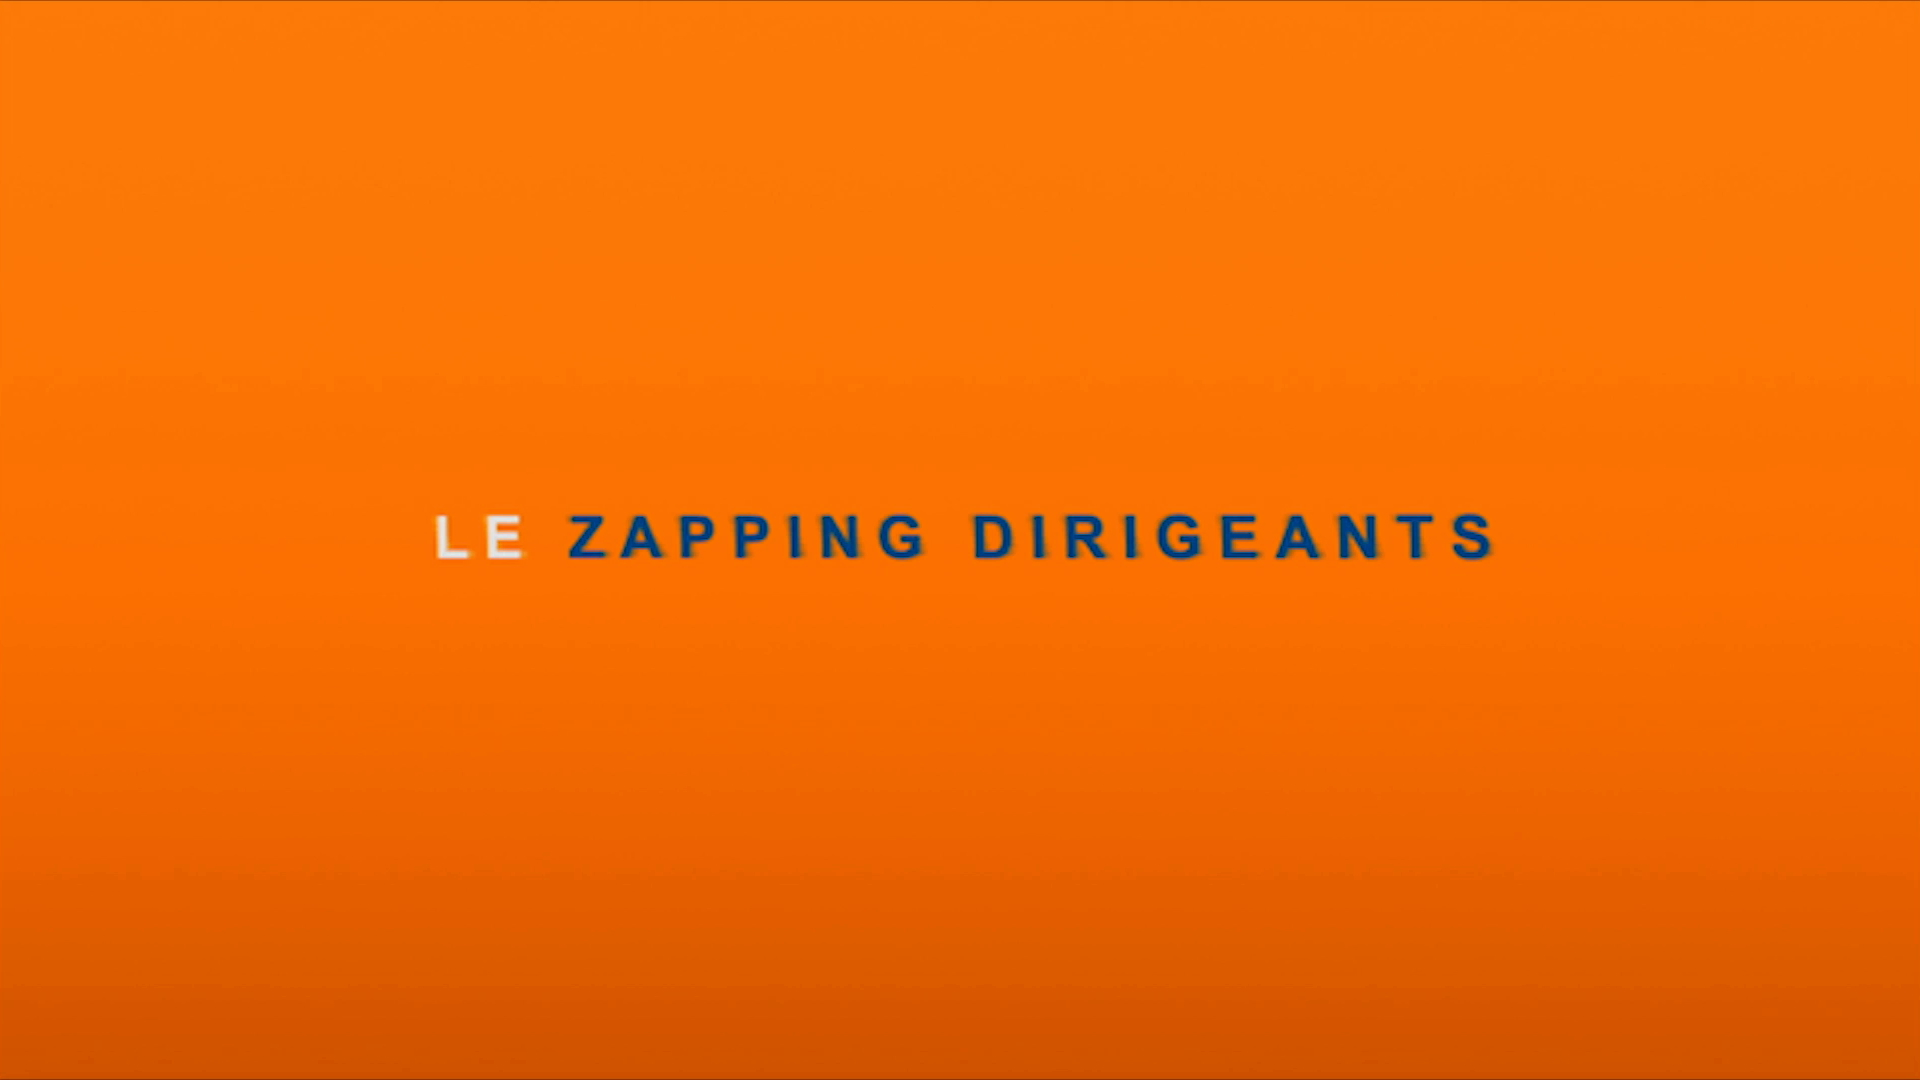 Zapping Dirigeants 2015 (Haulotte, Mersen Gl events)